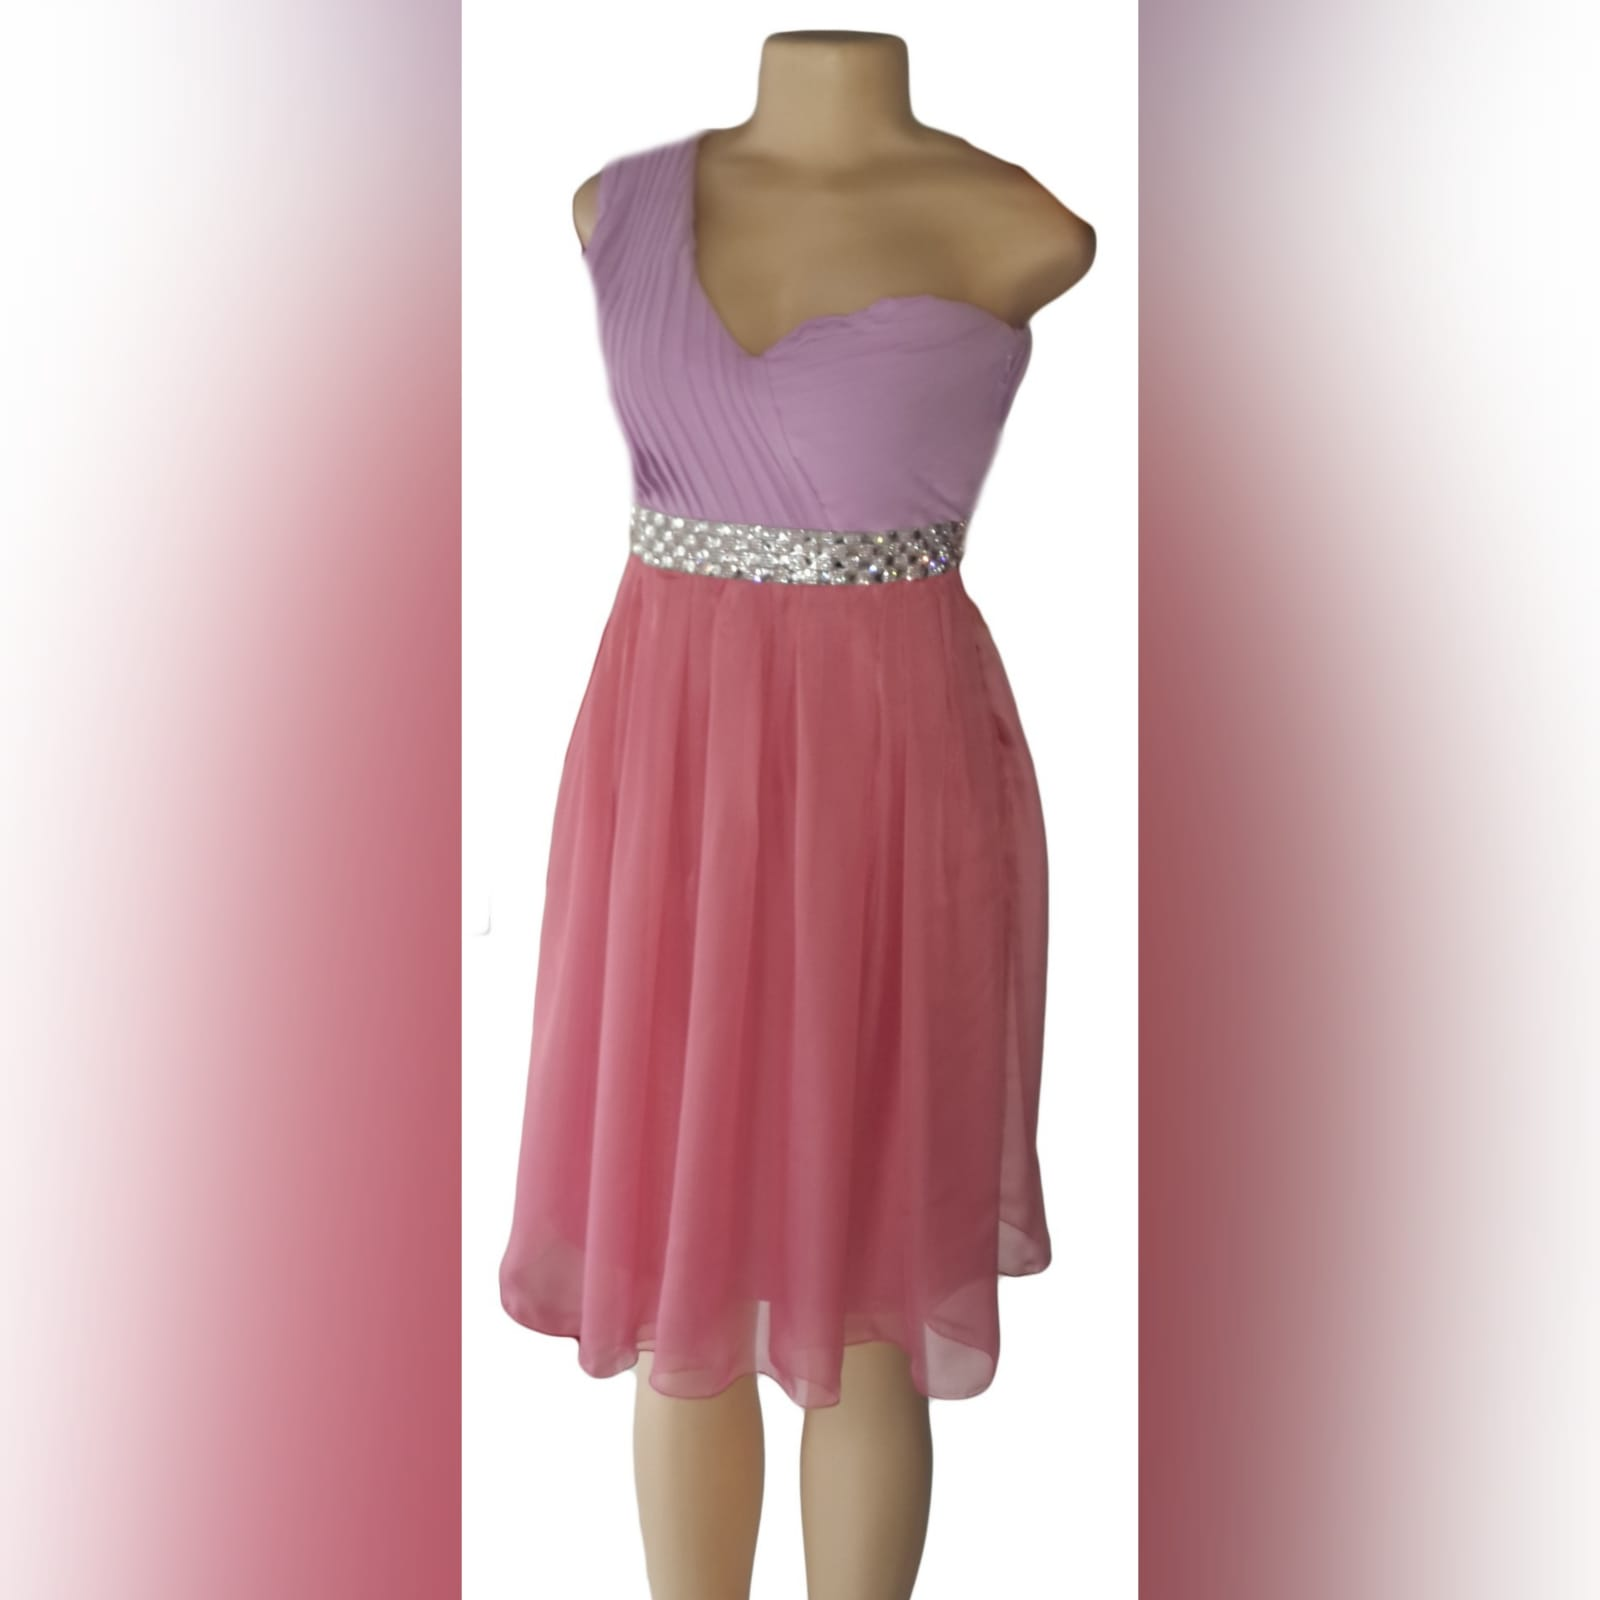 Lilac & dusty pink pink chiffon bridesmaid dress 1 lilac & dusty pink pink chiffon bridesmaid dress with a single shoulder sweetheart neckline. Pleated bodice with a silver belt bling detail.